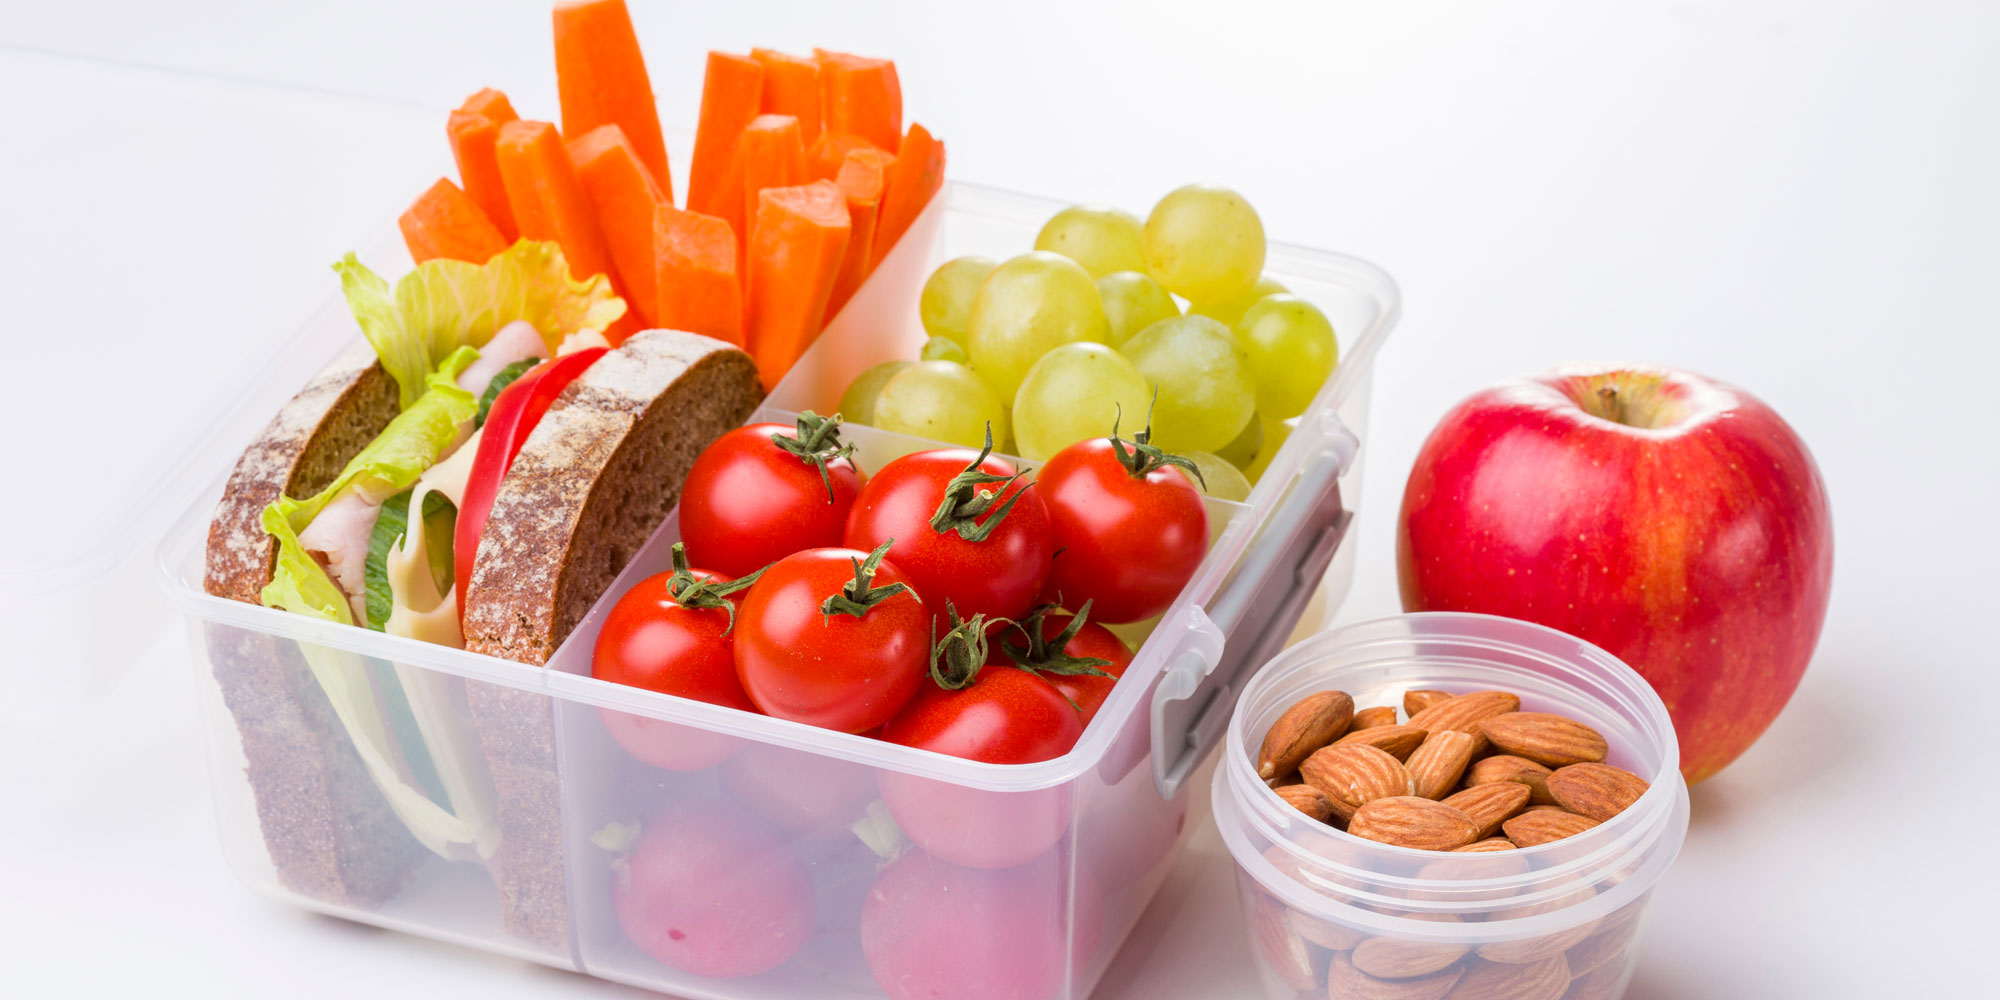 Nutrition and Health Education